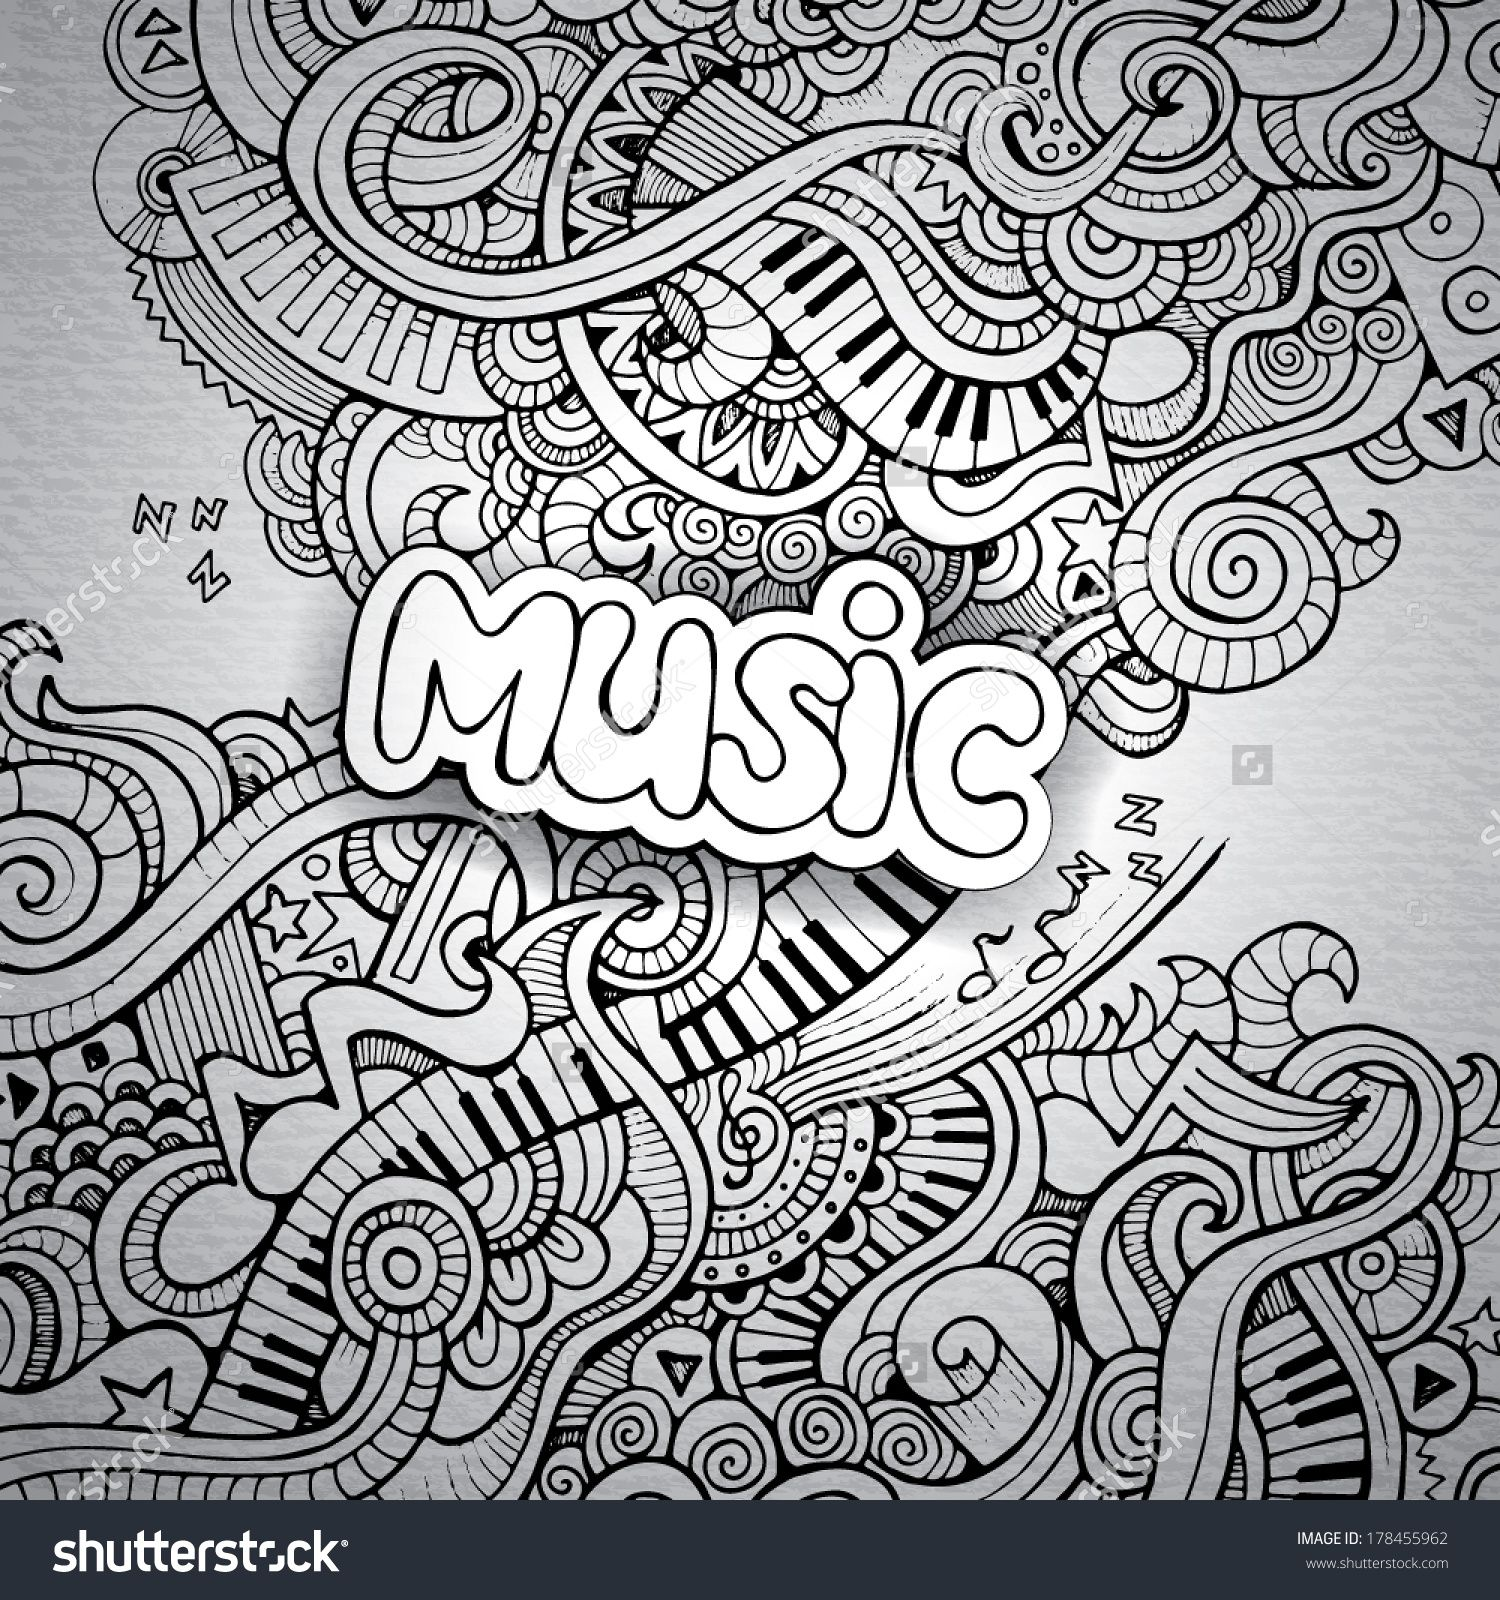 music sketchy notebook doodle shutterstock 178455962 music